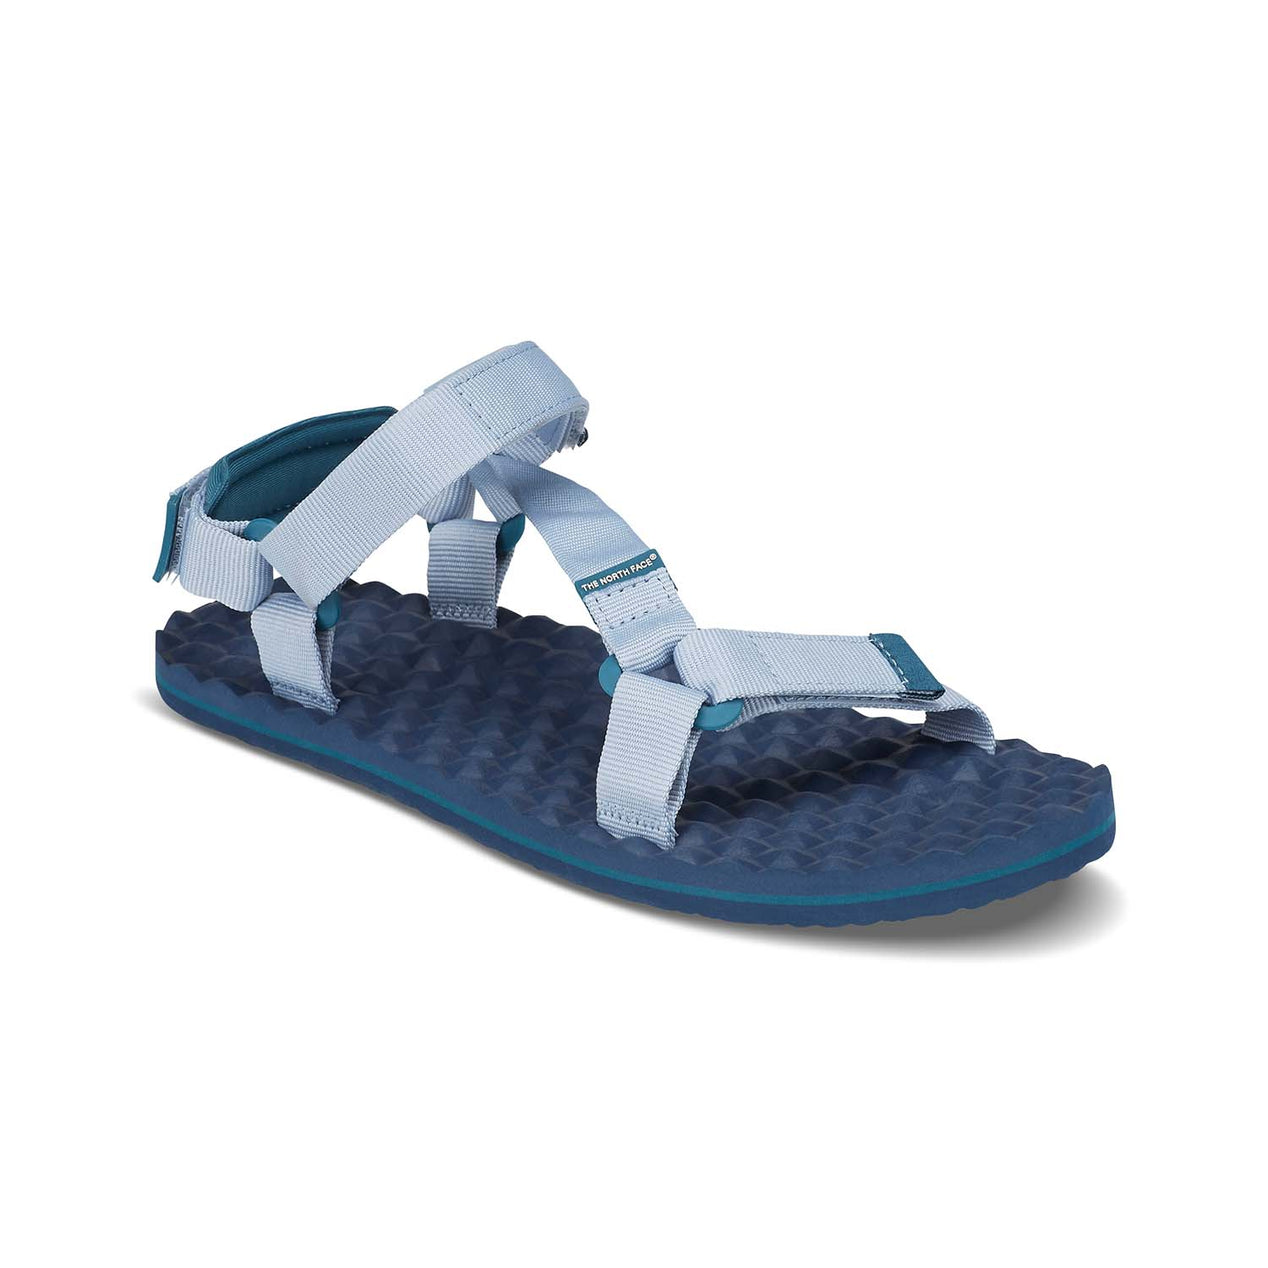 8ccbad6d6 The North Face Women's Base Camp Switchback Sandal Past Season